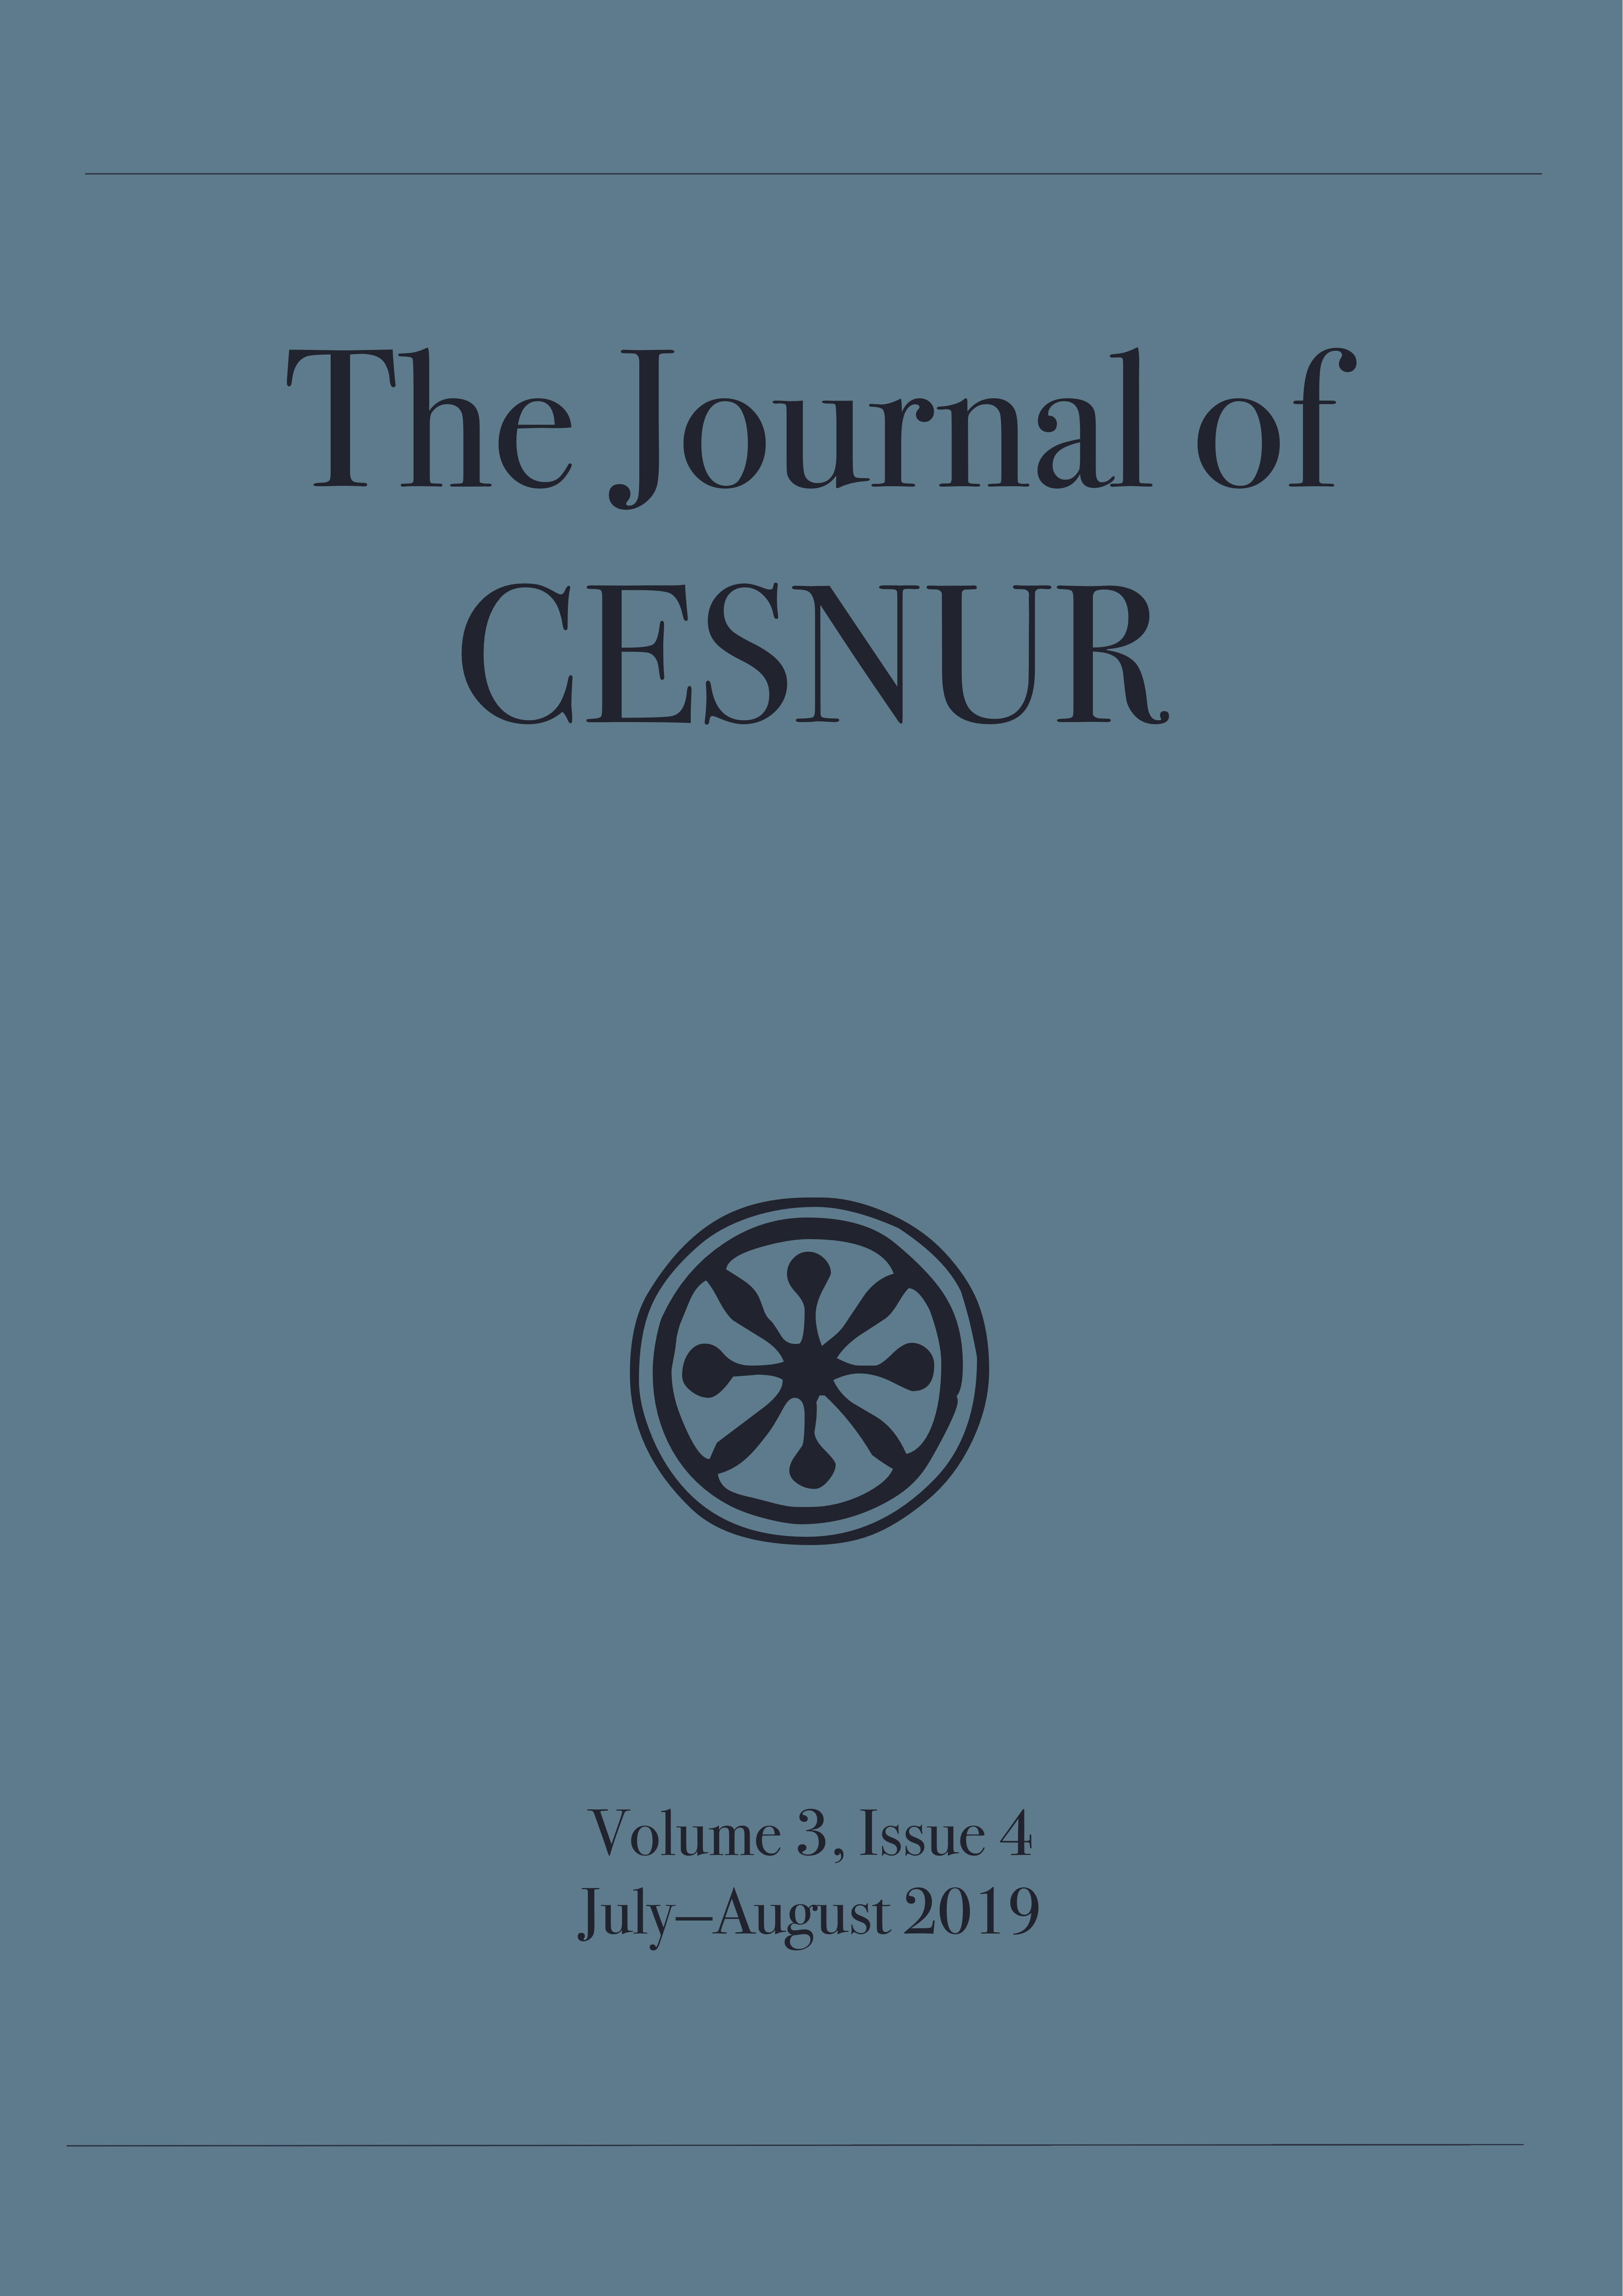 The Journal of Cesnur Volume 3 Issue 4 cover